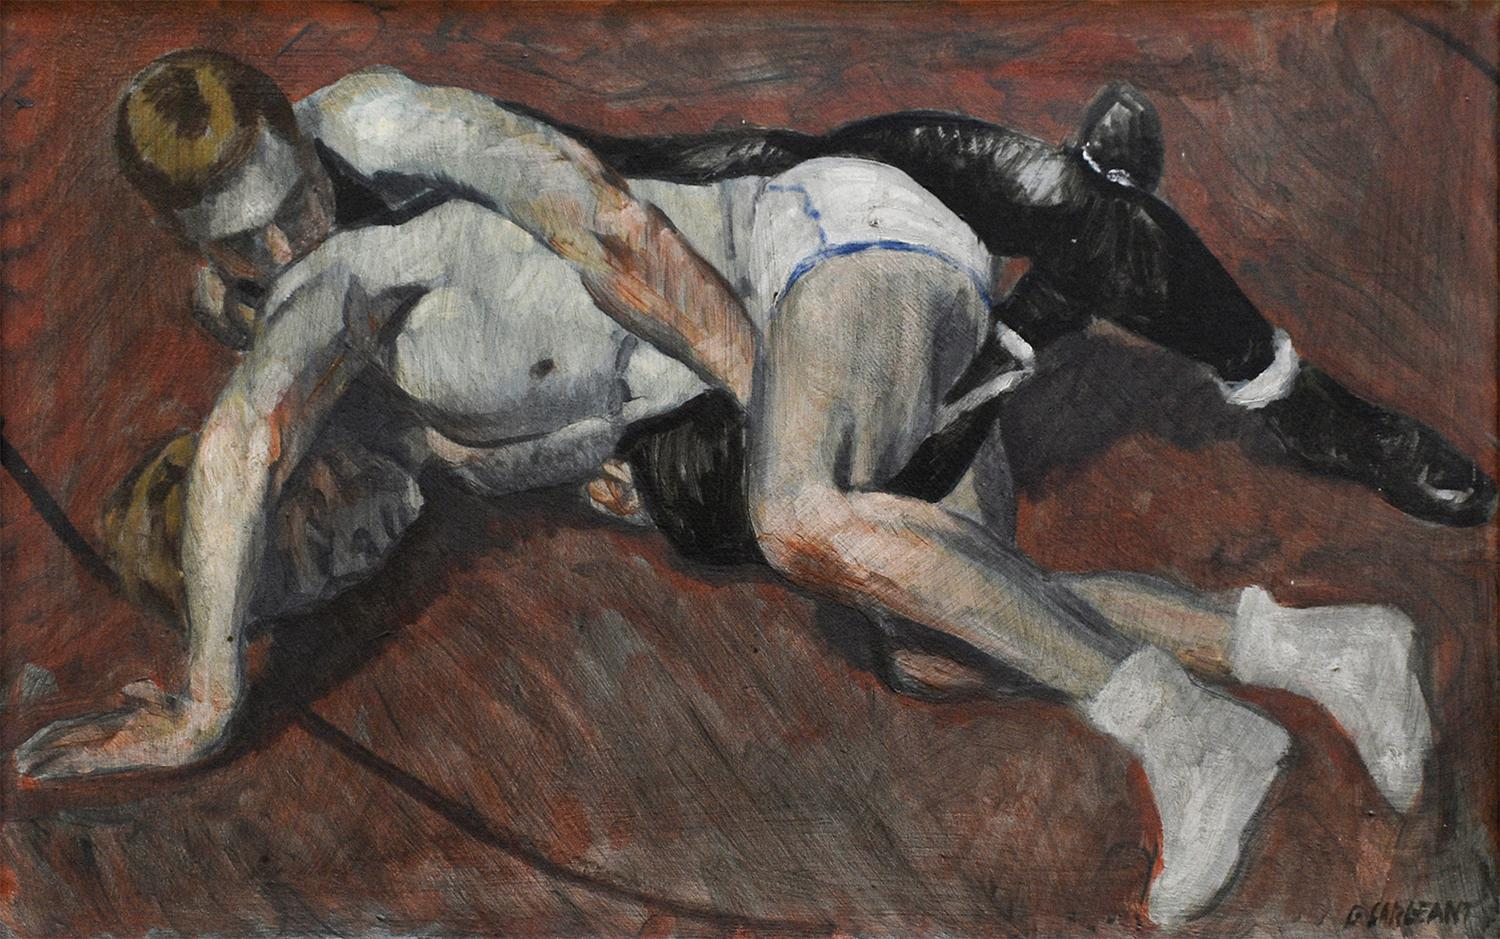 Young Wrestlers (Academic Figurative Painting of Male Athletes by Mark Beard)